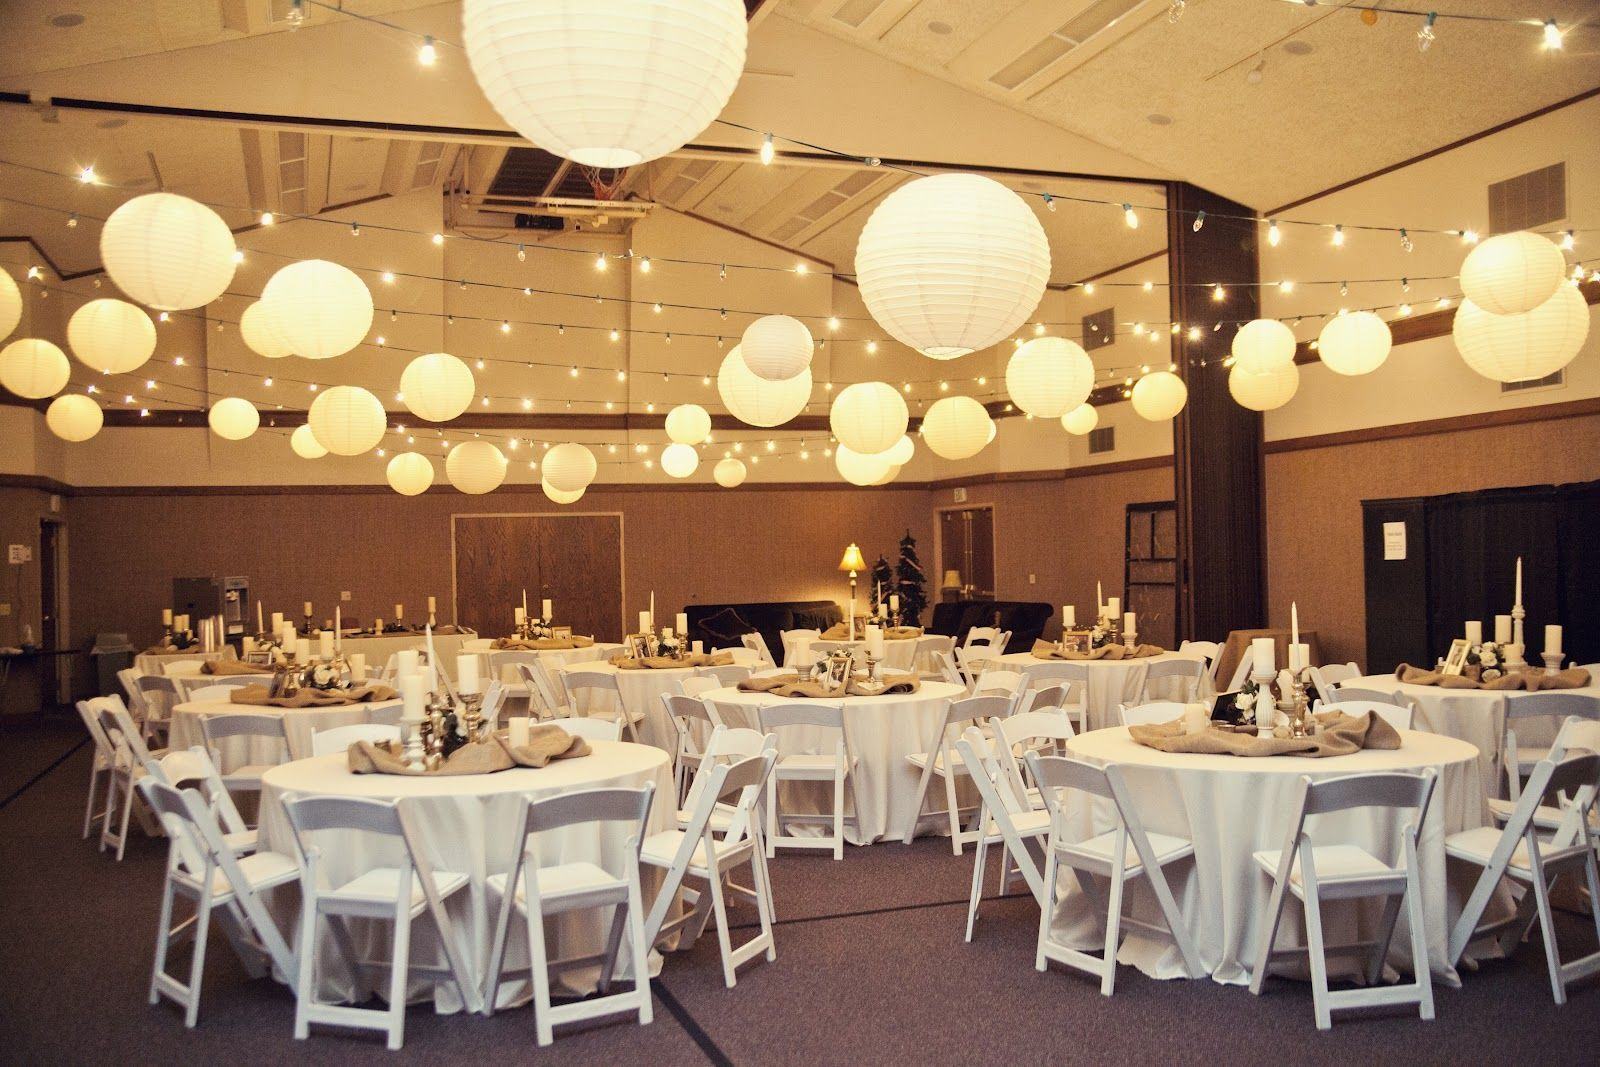 Wedding decorations tulle and lights   Ways to Save Money on Reception Rentals Chairs tables lighting